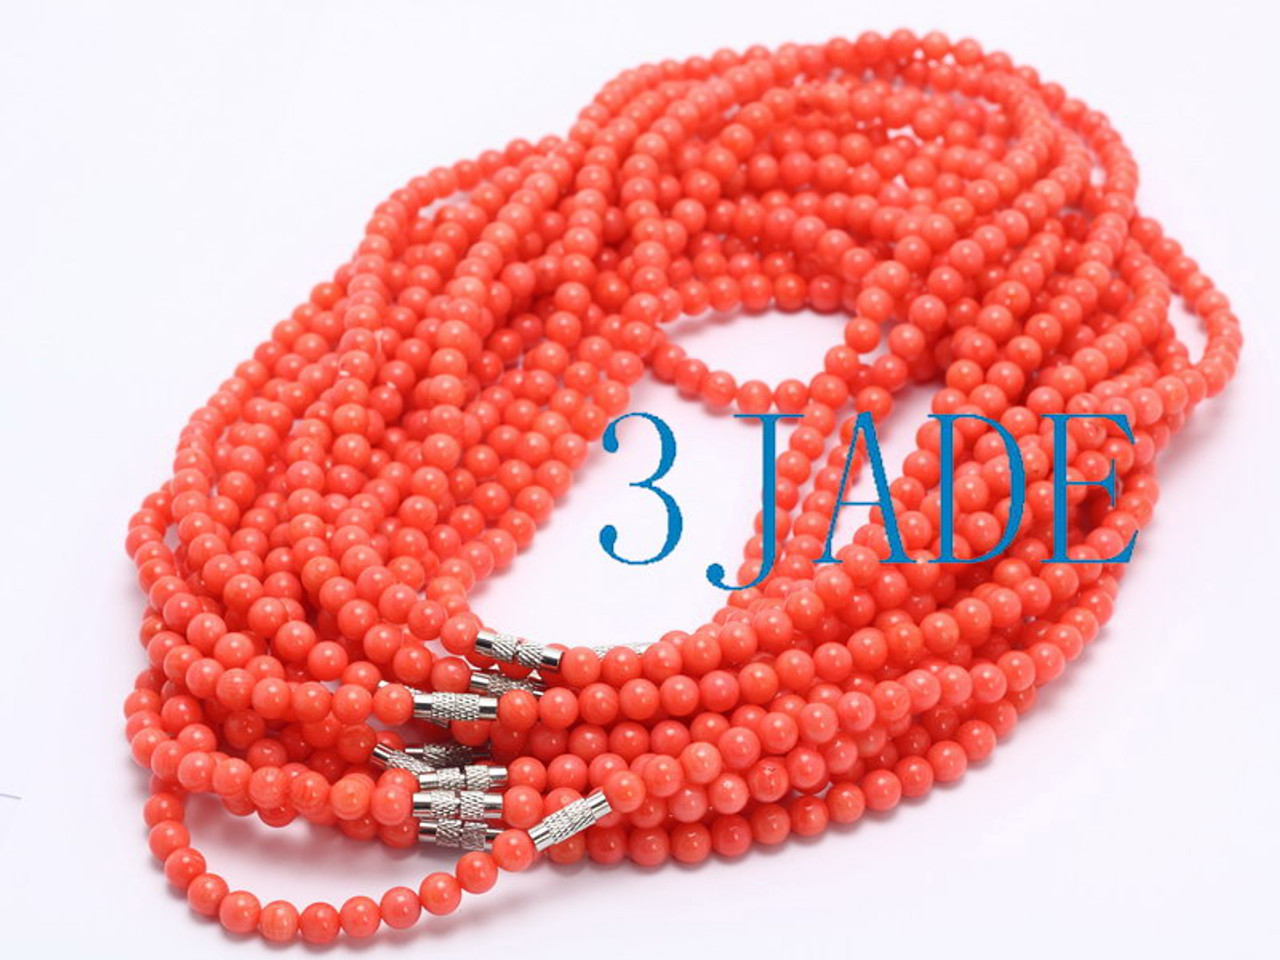 Genuine Beads Necklace